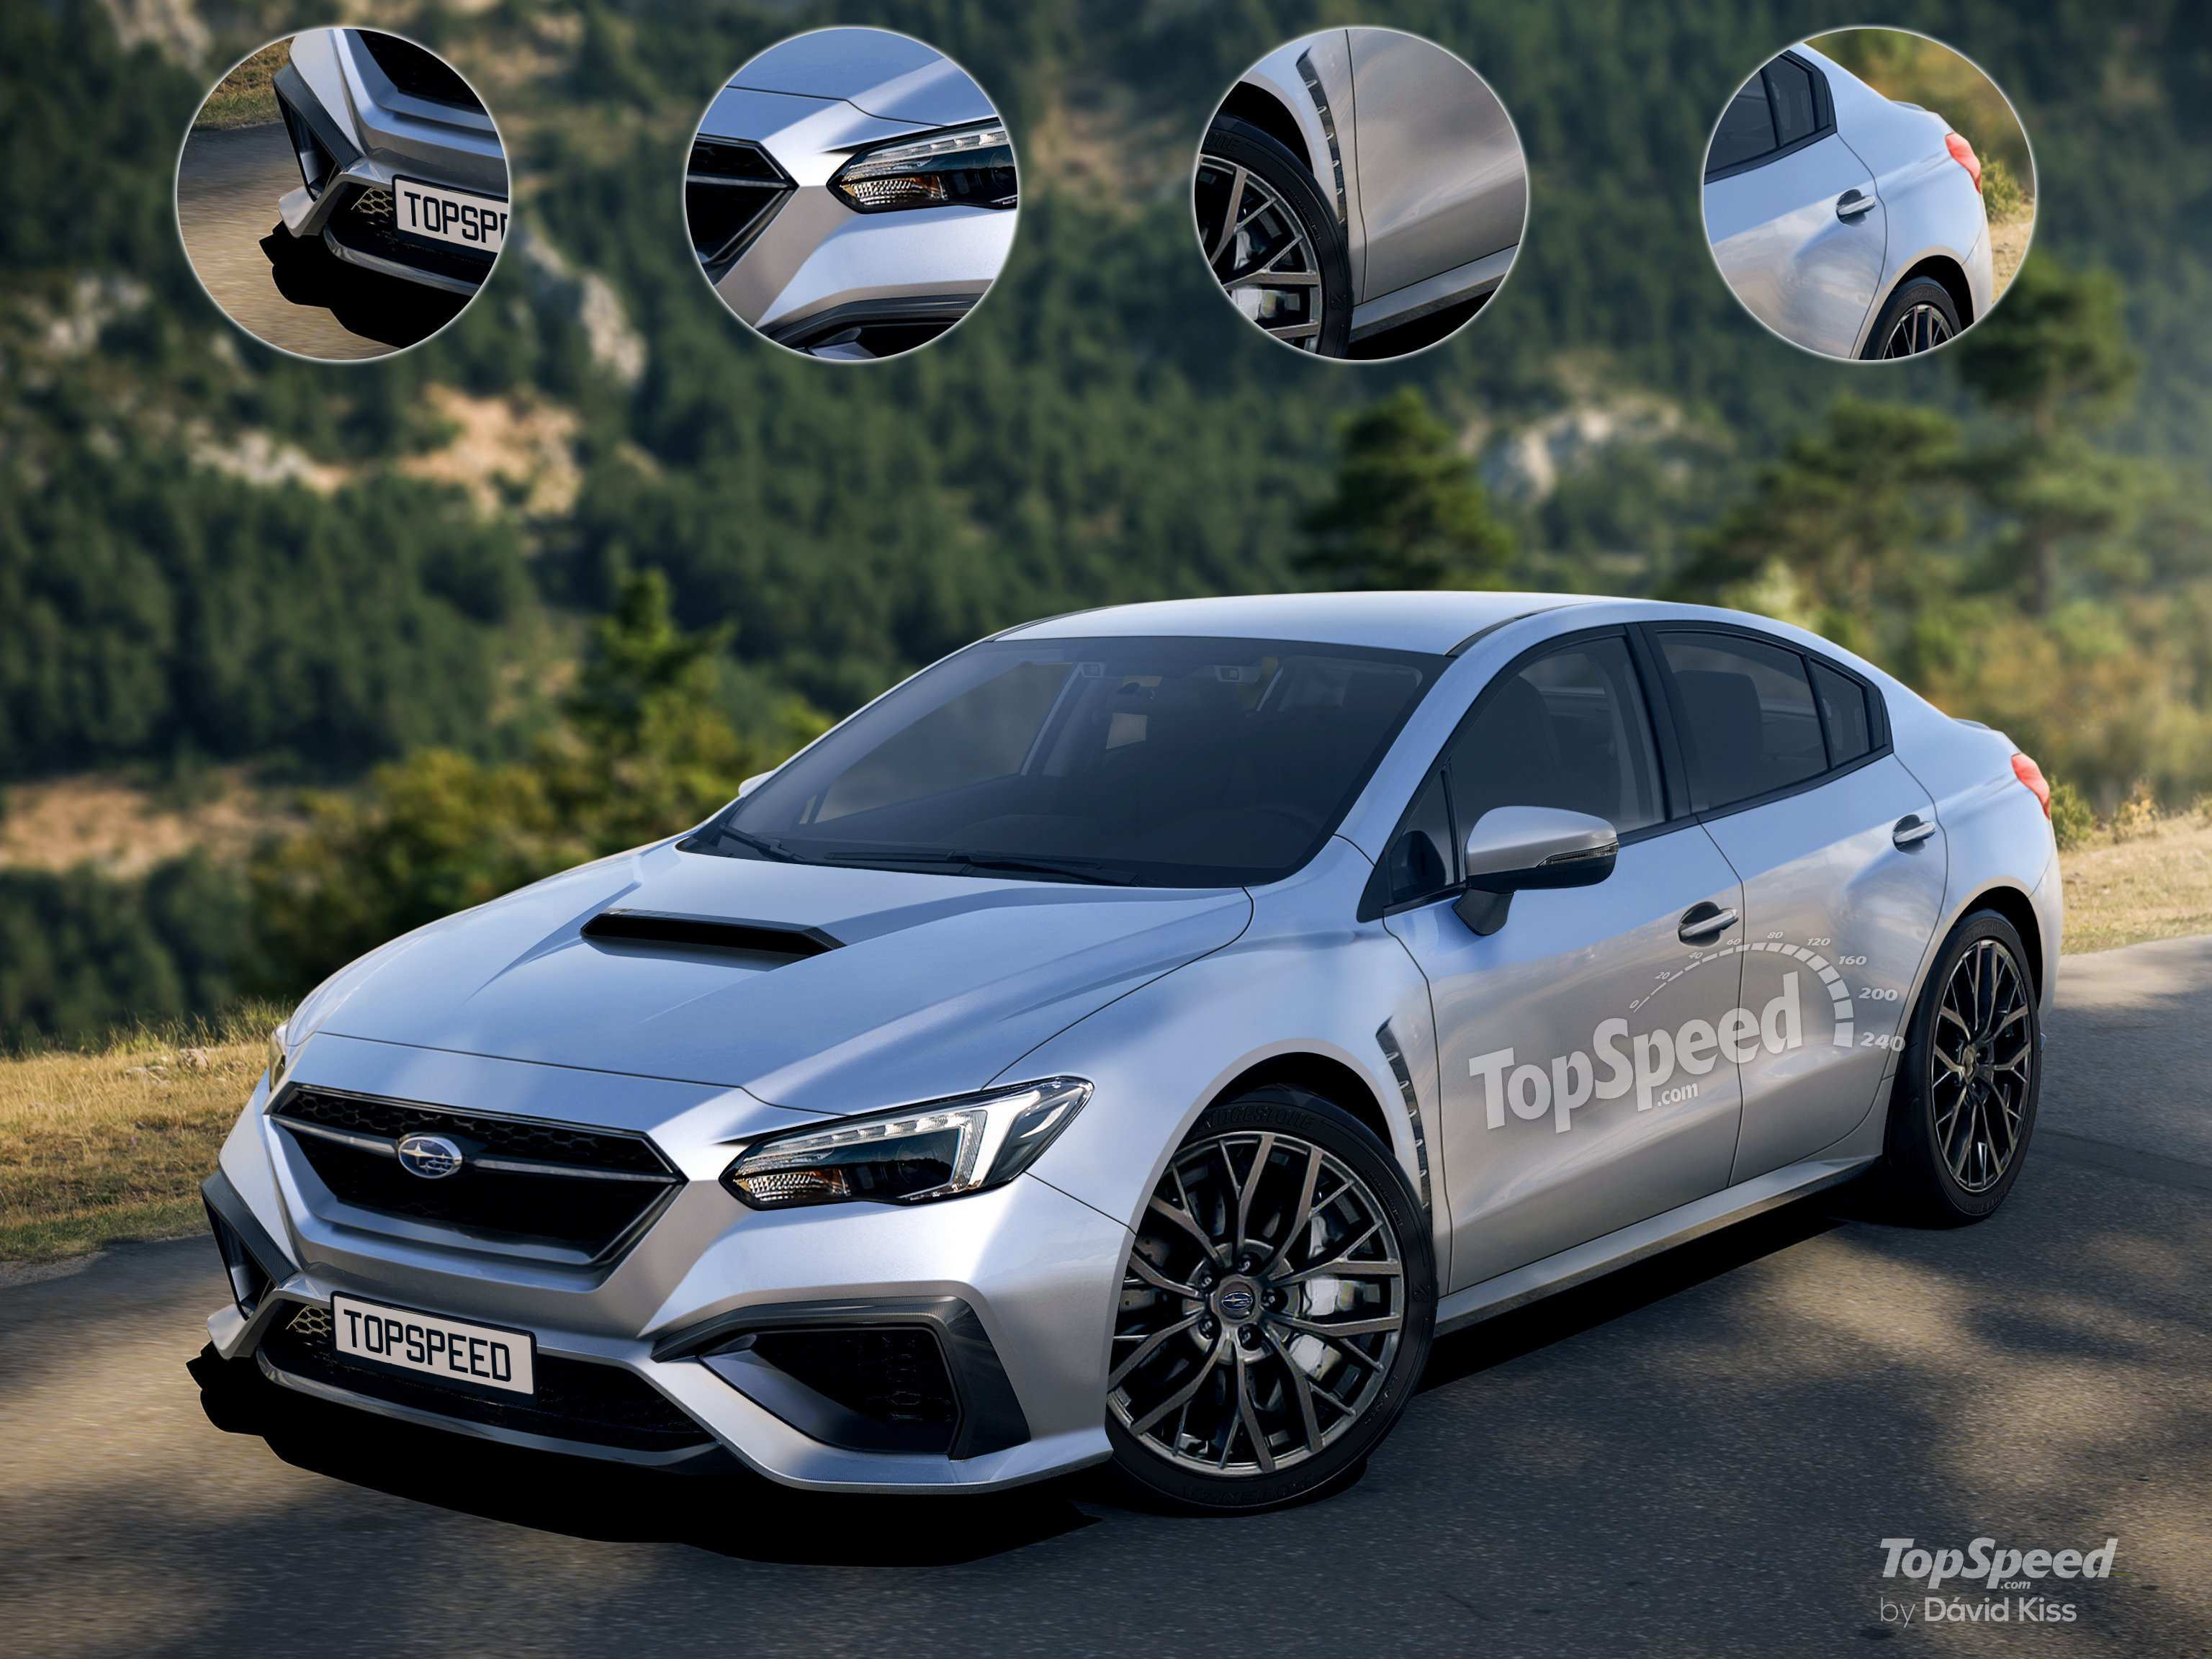 55 All New 2020 Subaru Wrx Exterior And Interior